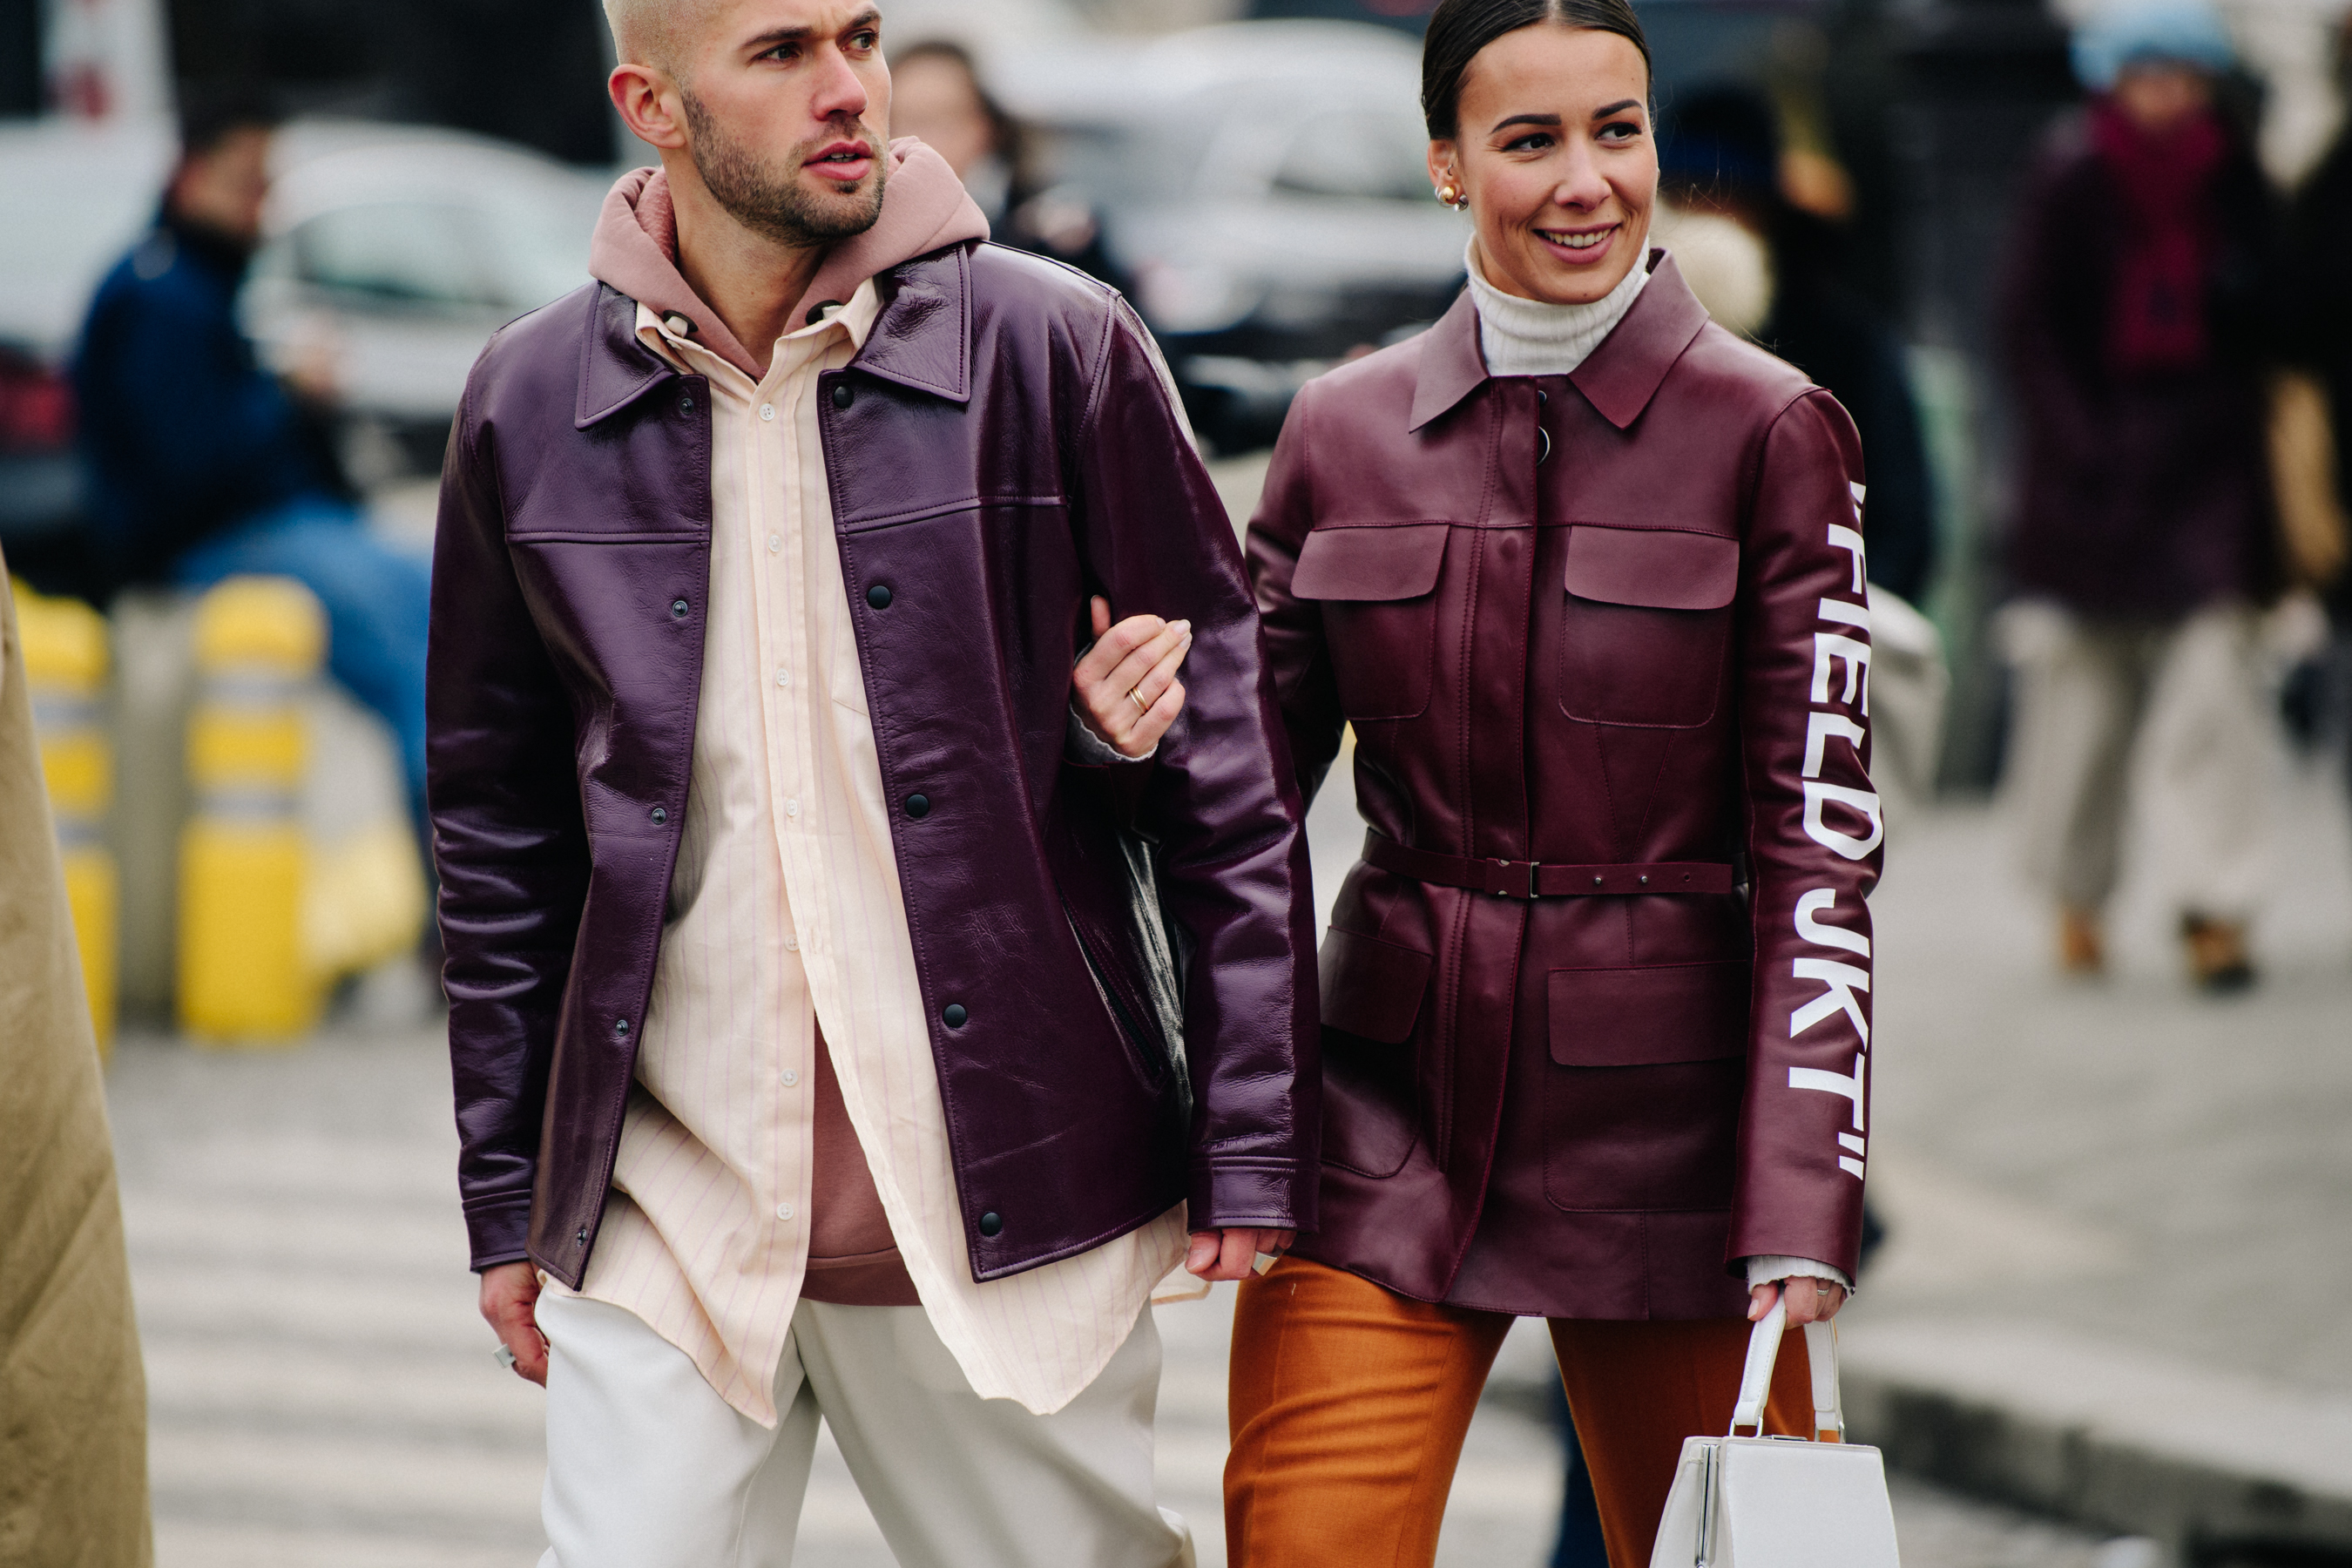 Couple wearing red leather jackets